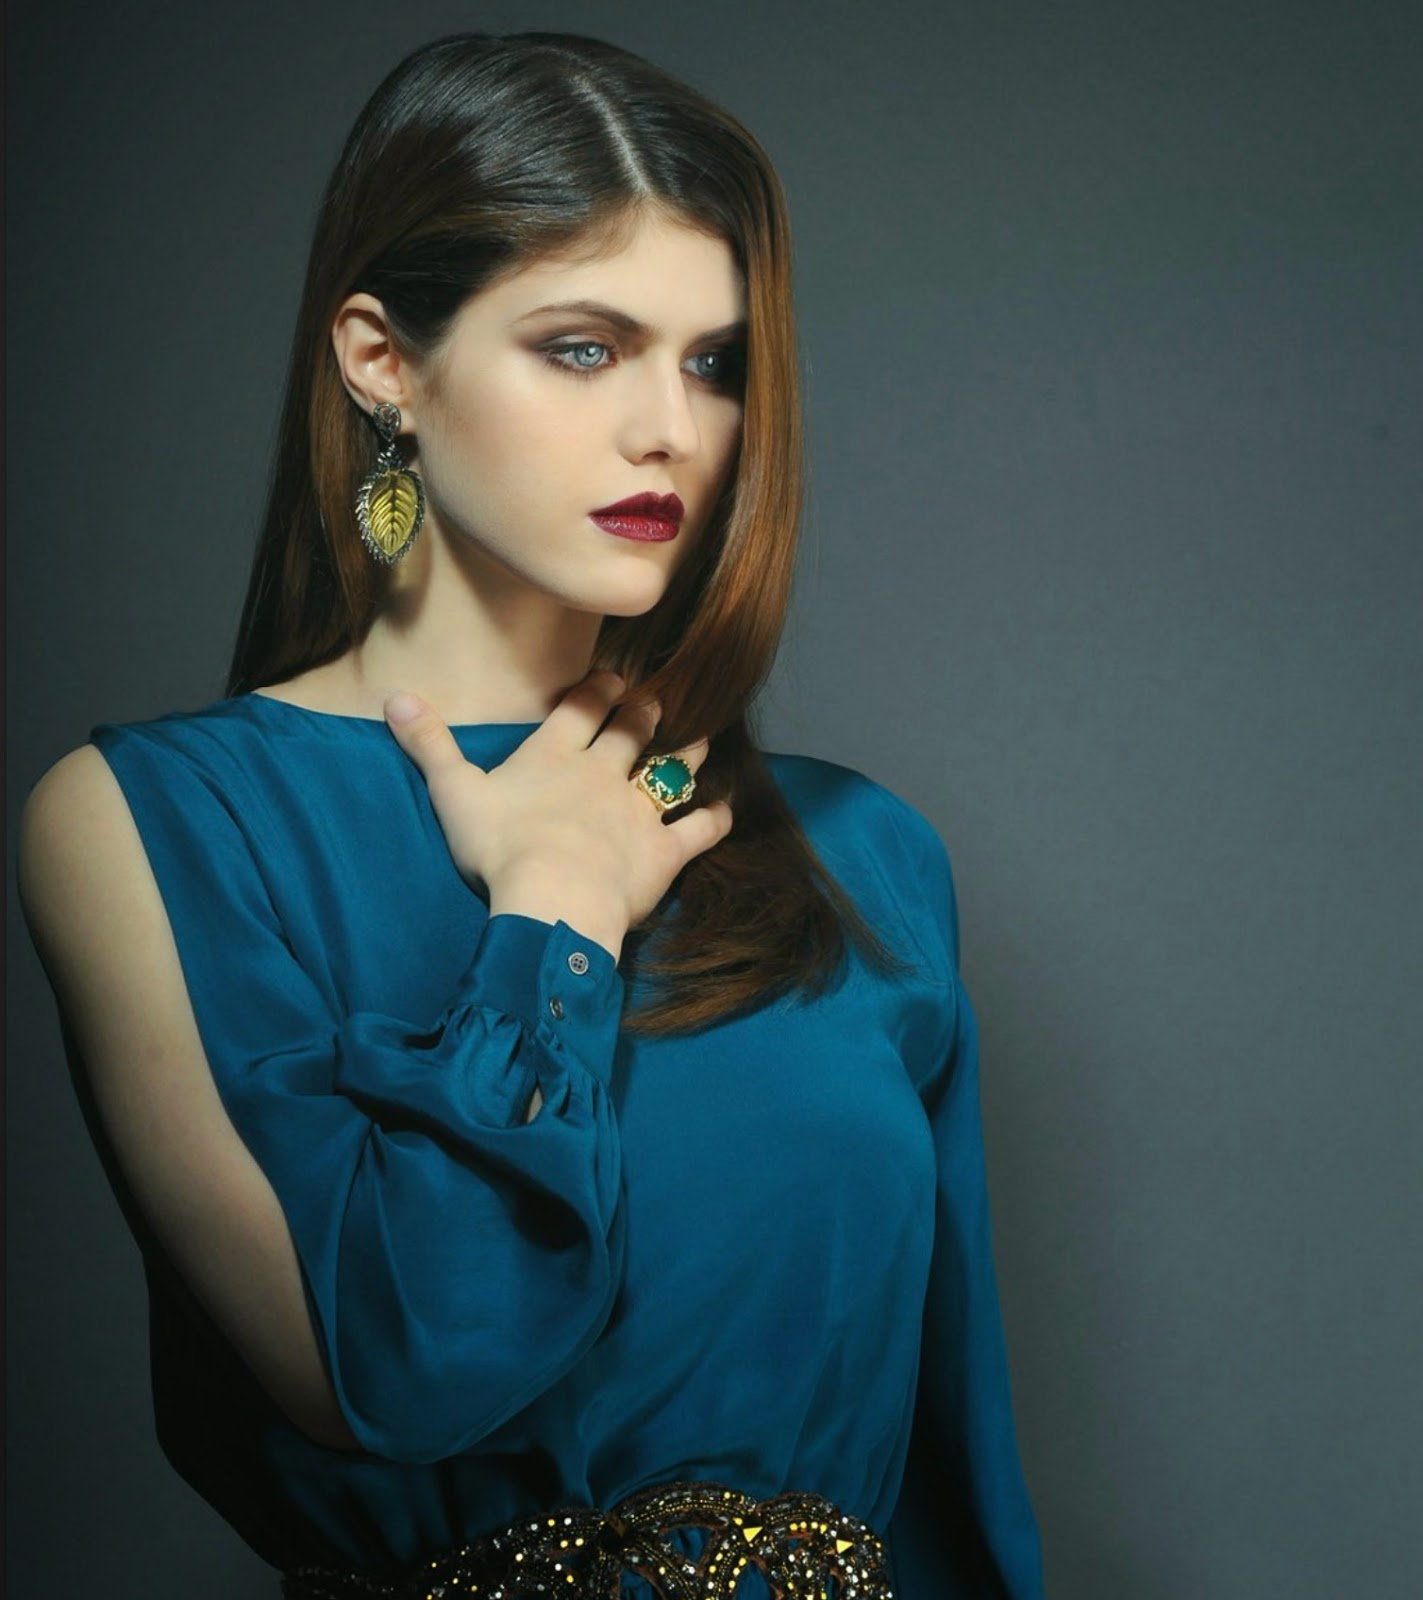 Alexandra Daddario HD Images And Wallpapers